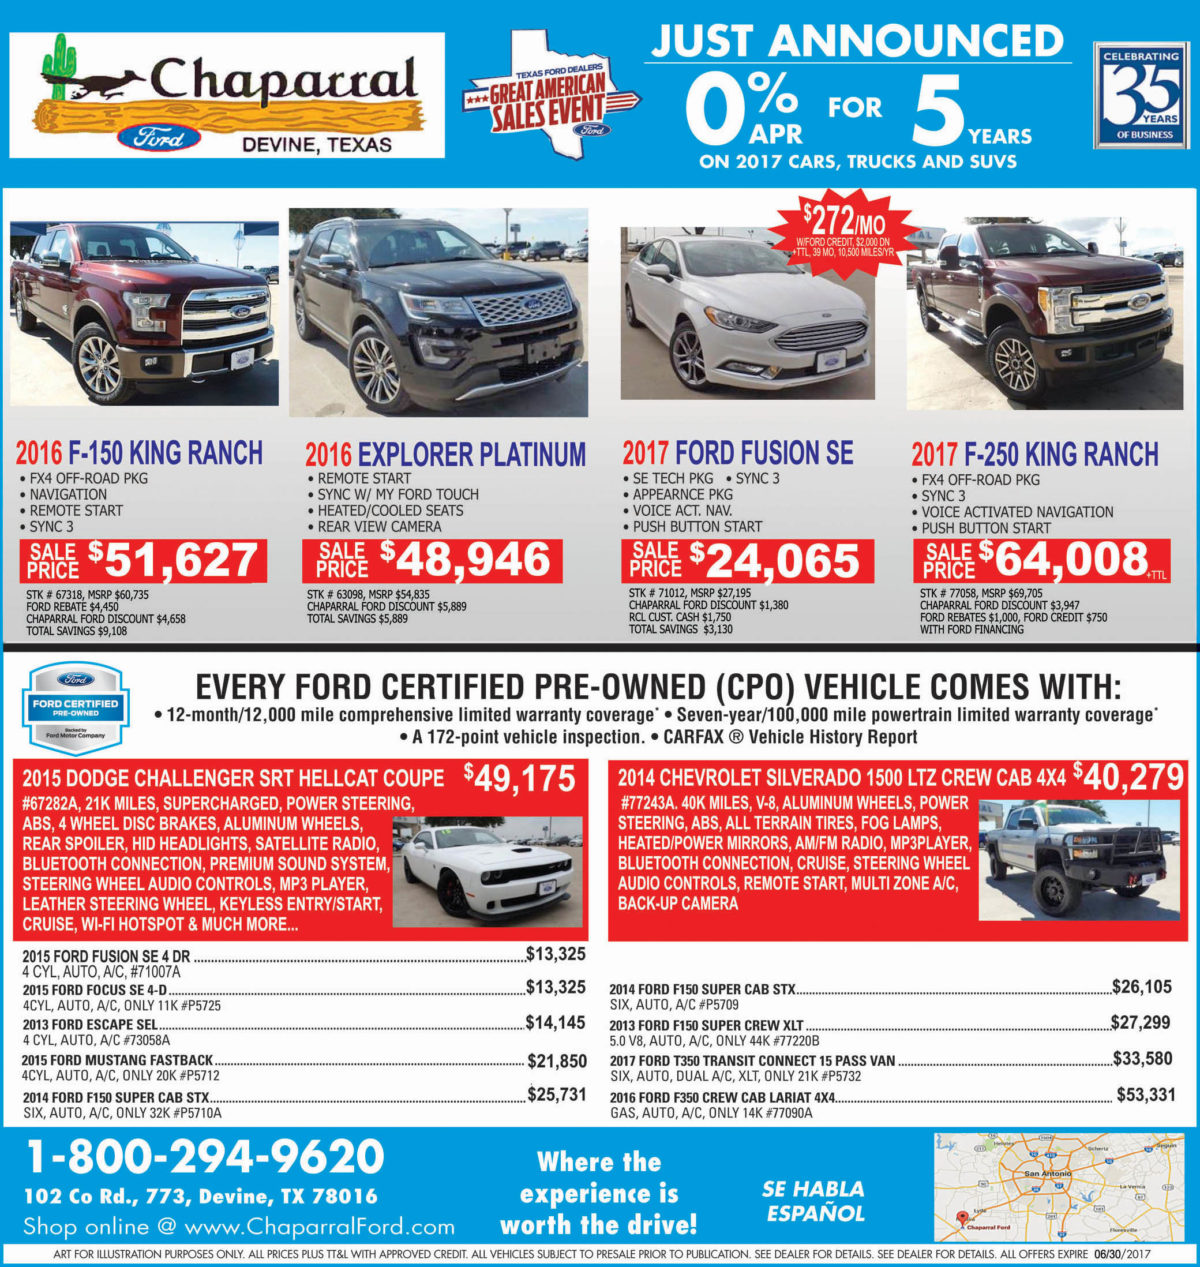 Chaparral Ford deals for the week of 6-7-17